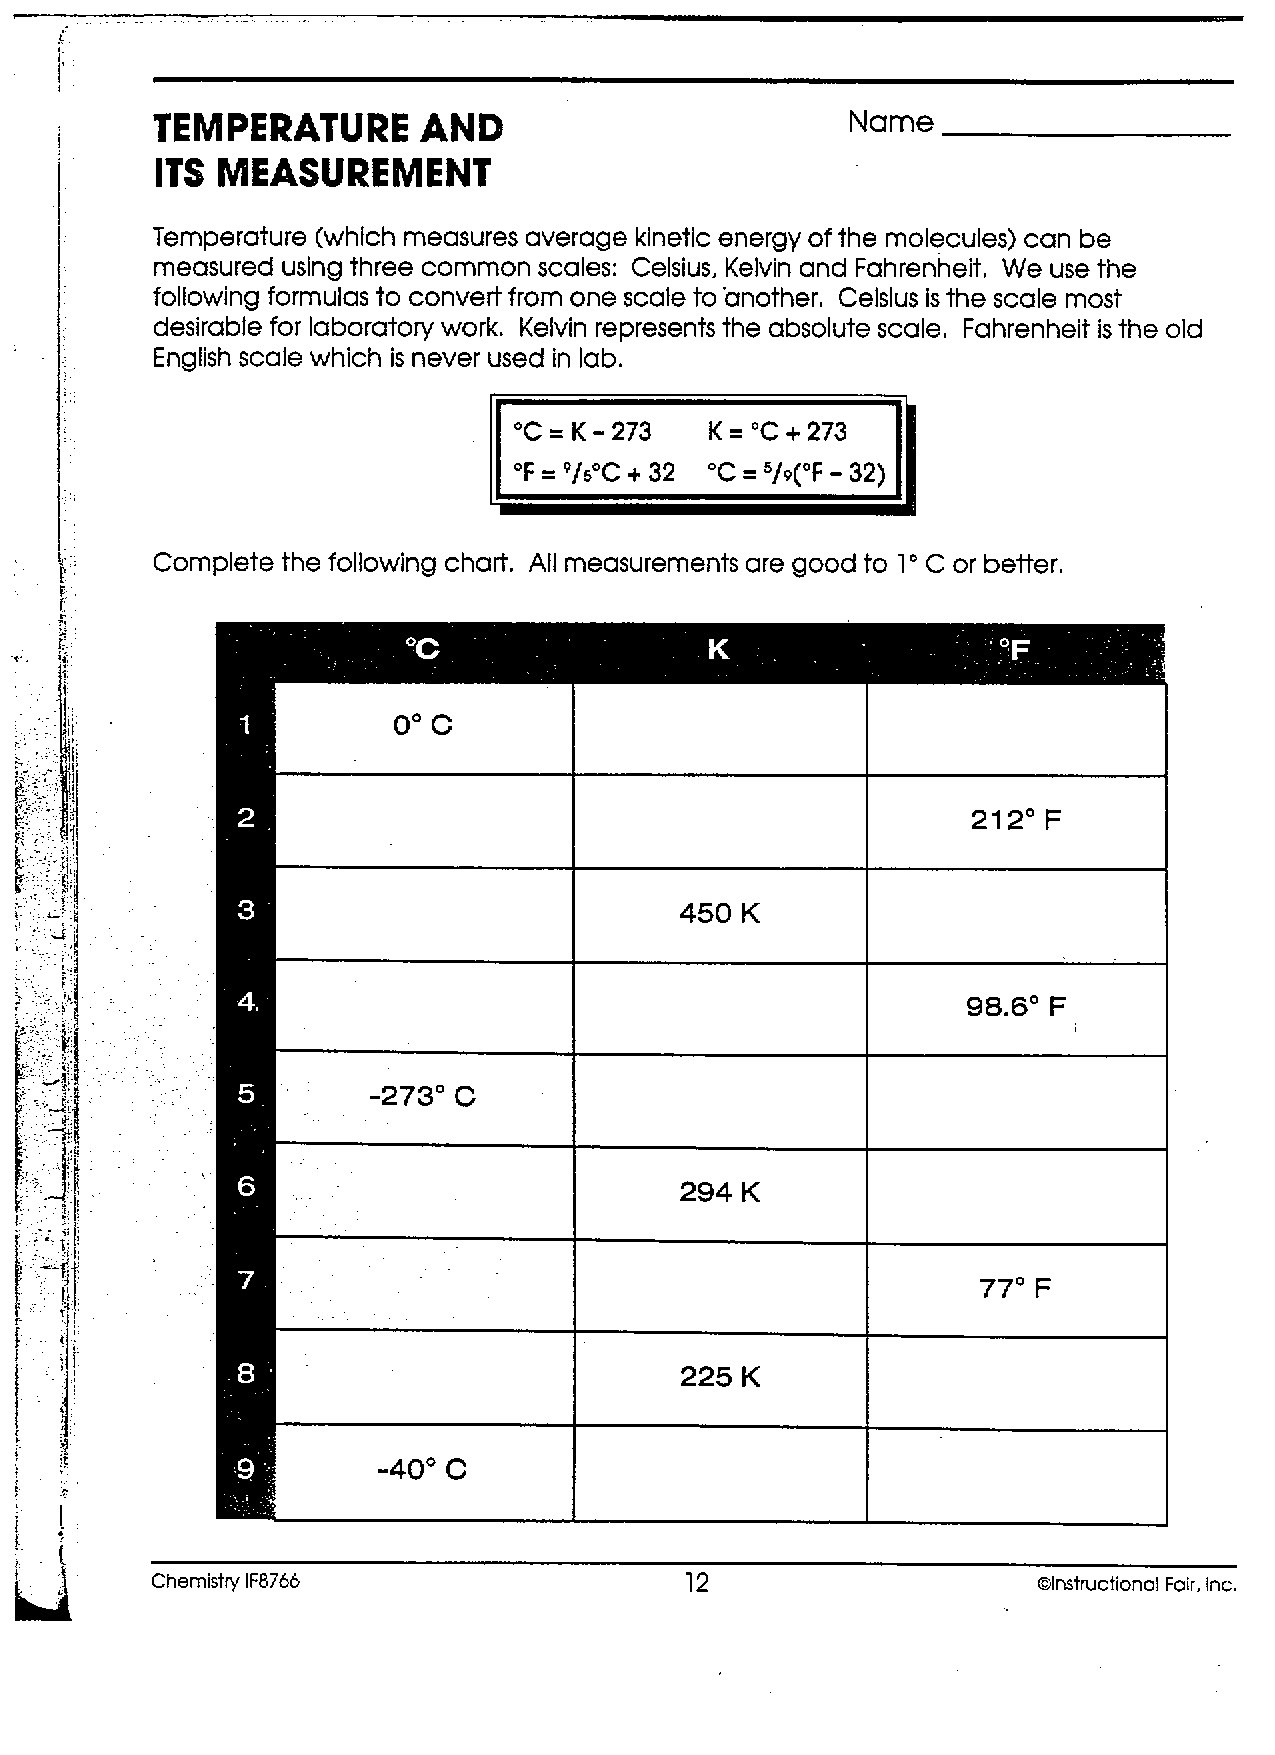 Temperature And Its Measurement Worksheets